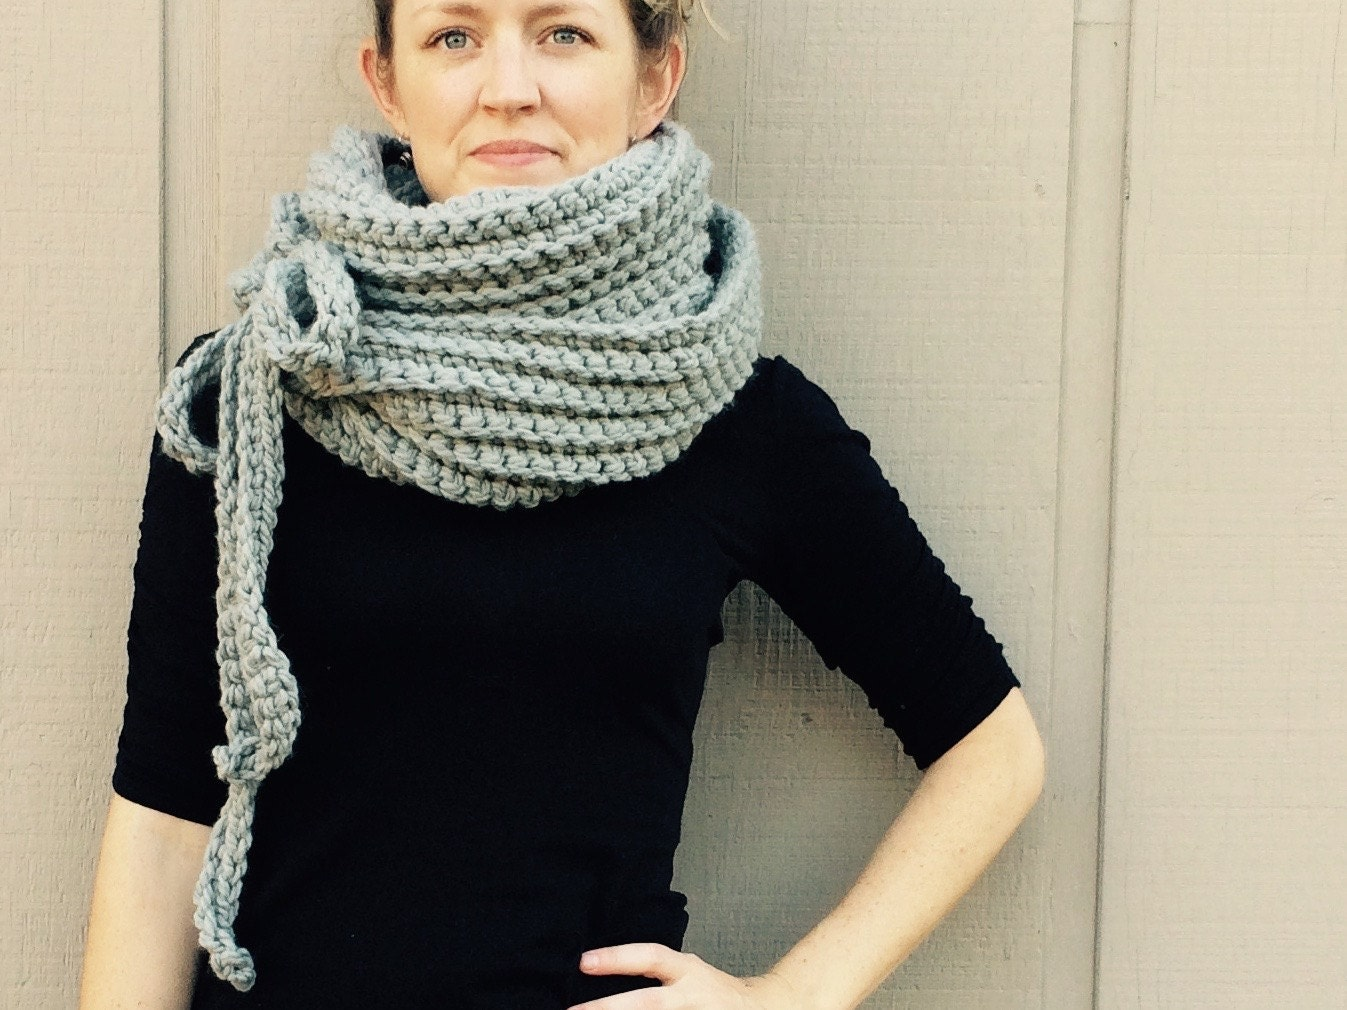 Diy crochet pattern super bulky yarn easy crochet p d f chunky diy crochet pattern super bulky yarn easy crochet p d f chunky yarn scarf cowl with ties instant download the kristin scarf bankloansurffo Choice Image